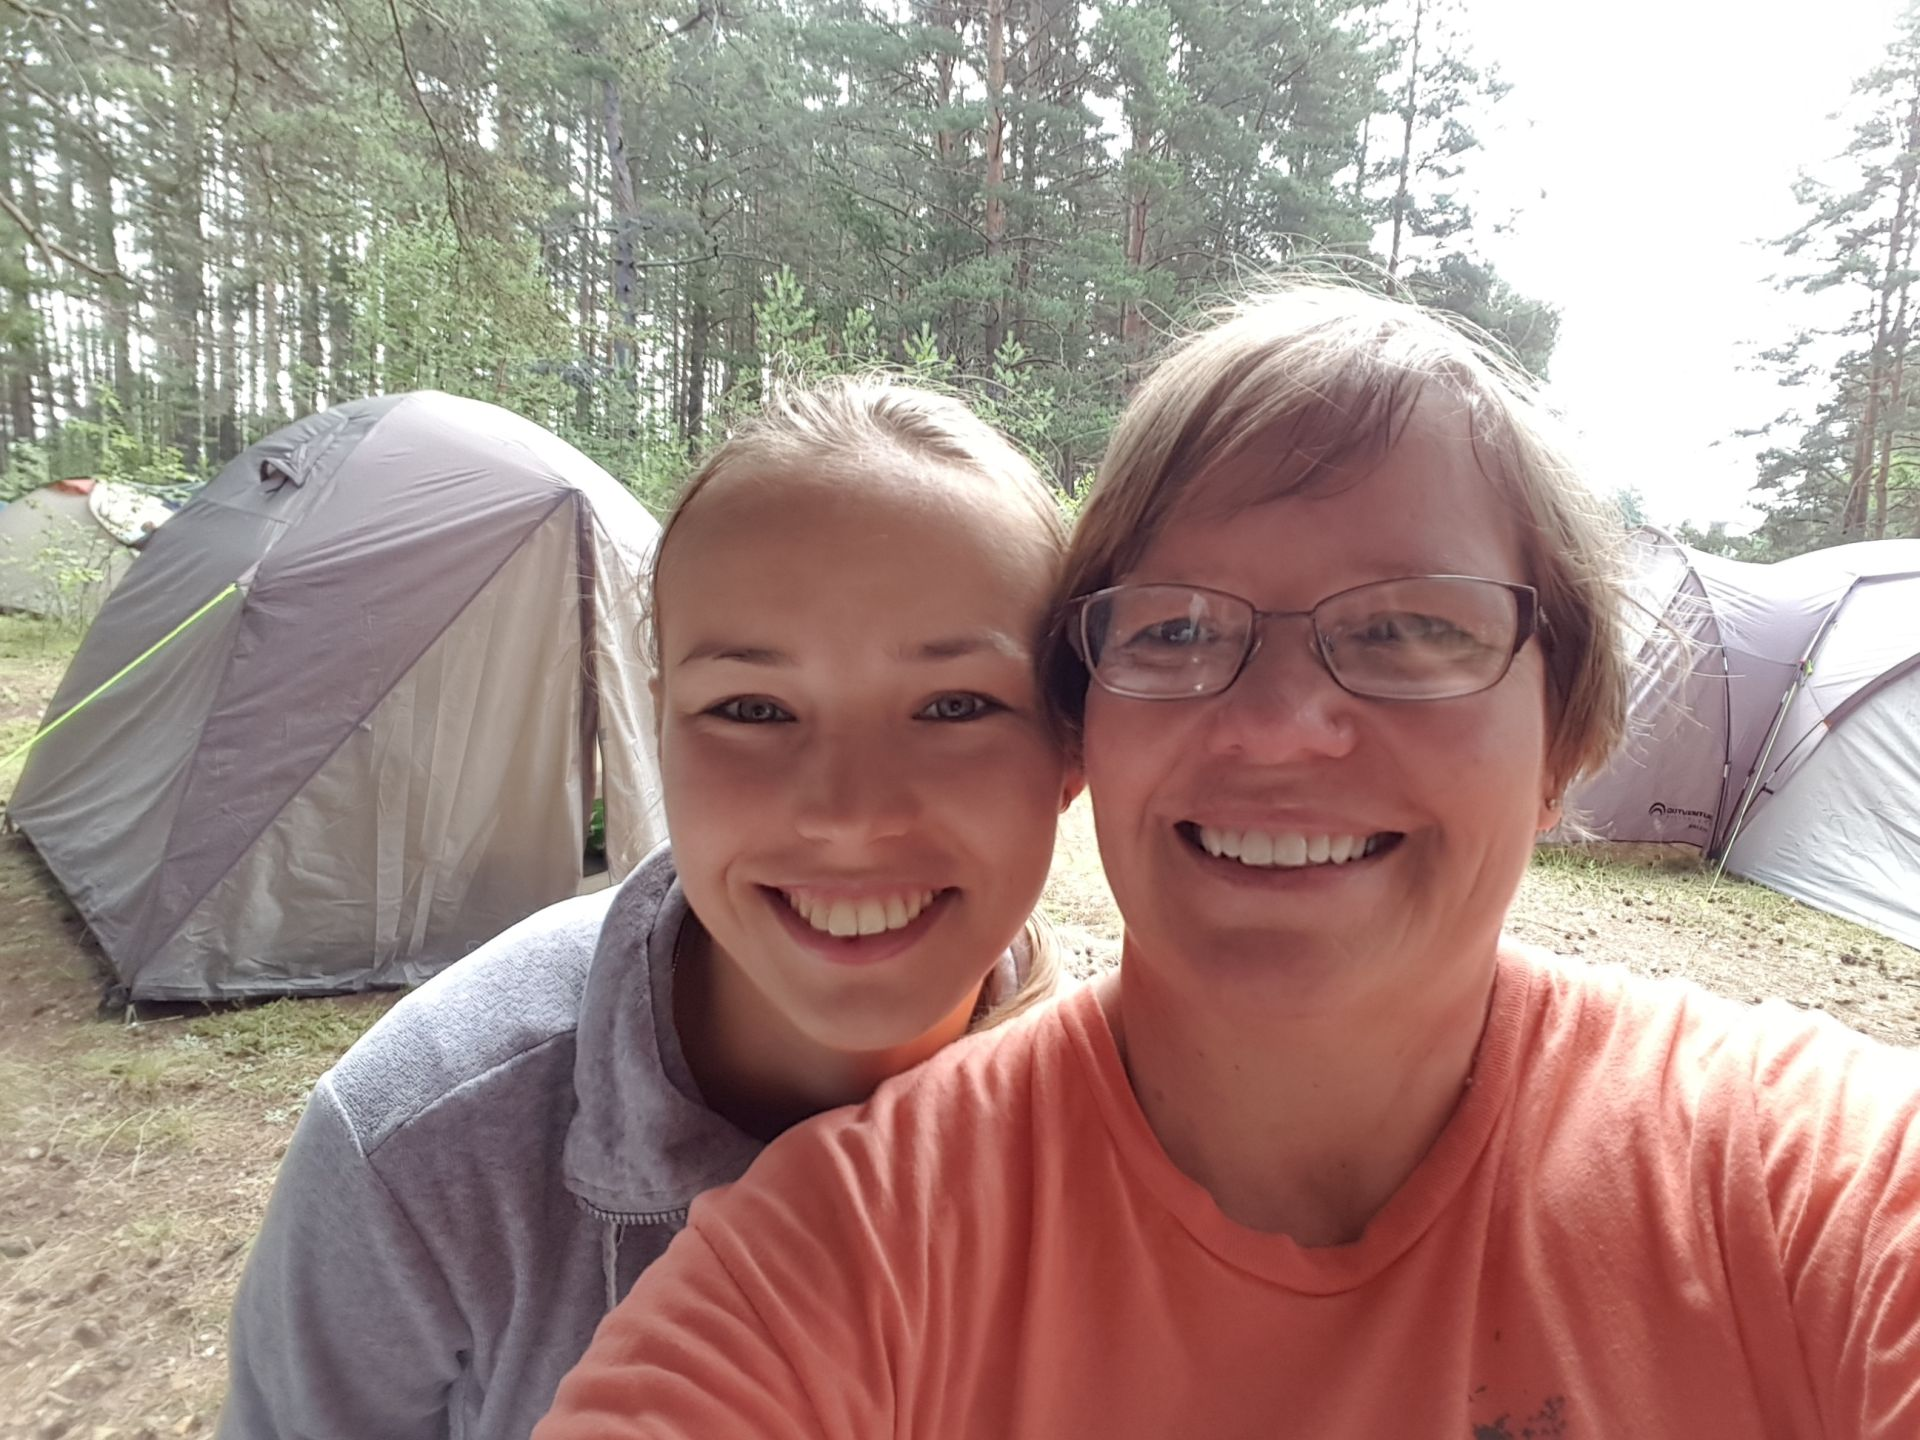 Becky with Russian girl on camp out - Jul 2017